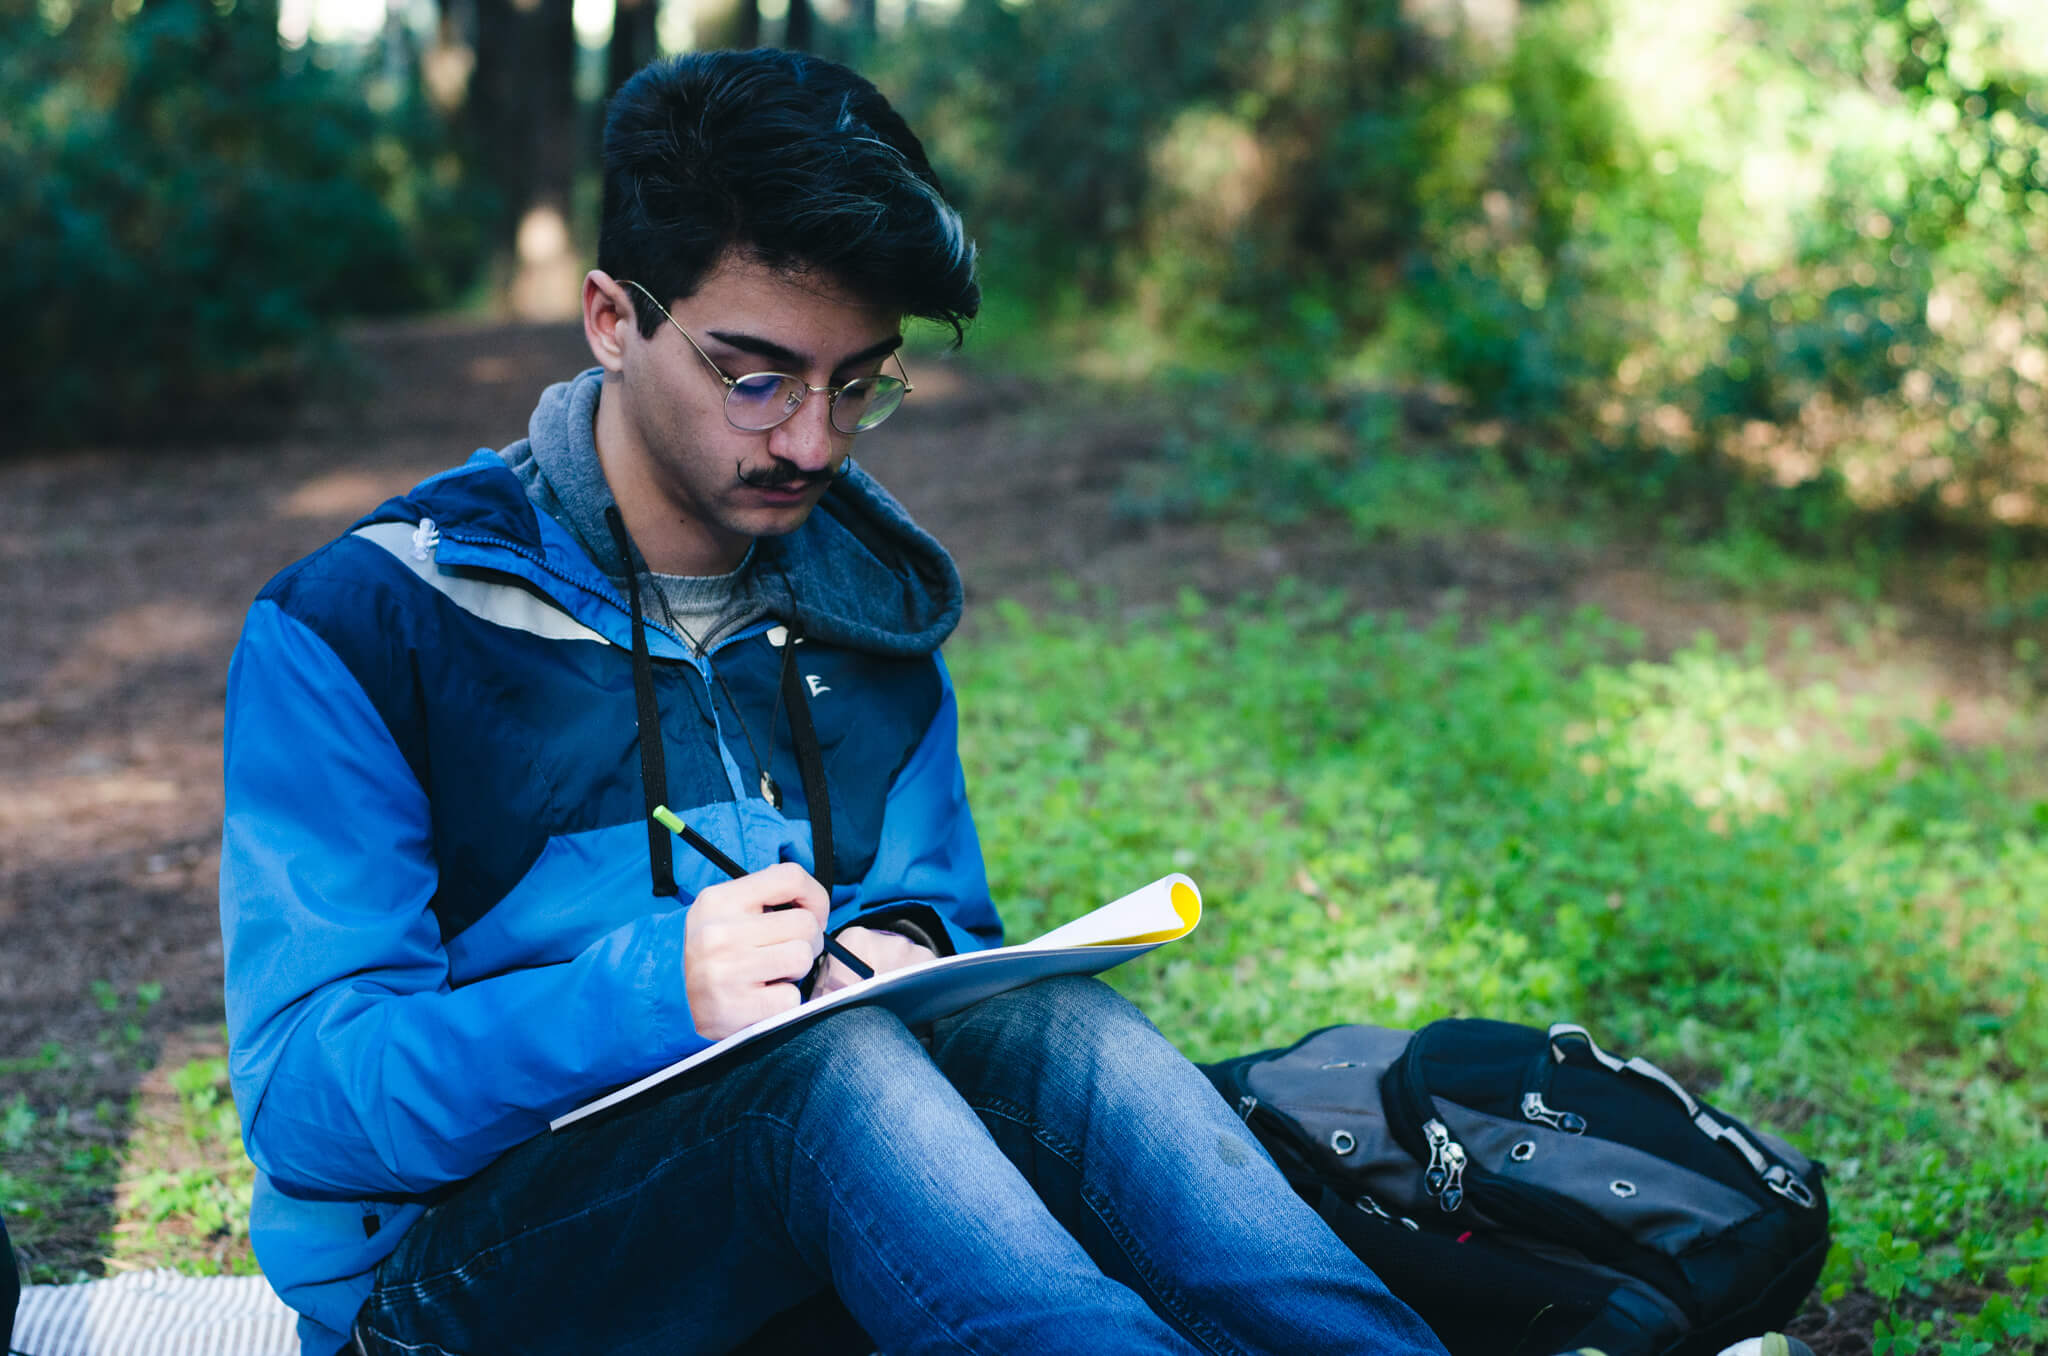 HIKE & SKETCH IN NATURE  Costa da Caparica Fossil Cliff FROM 45,00€  Into the forest we go, with a pencil, a paper, and some crayons. It is a creative and mindful experience and a refreshing break from our technology-filled, overstimulated world.